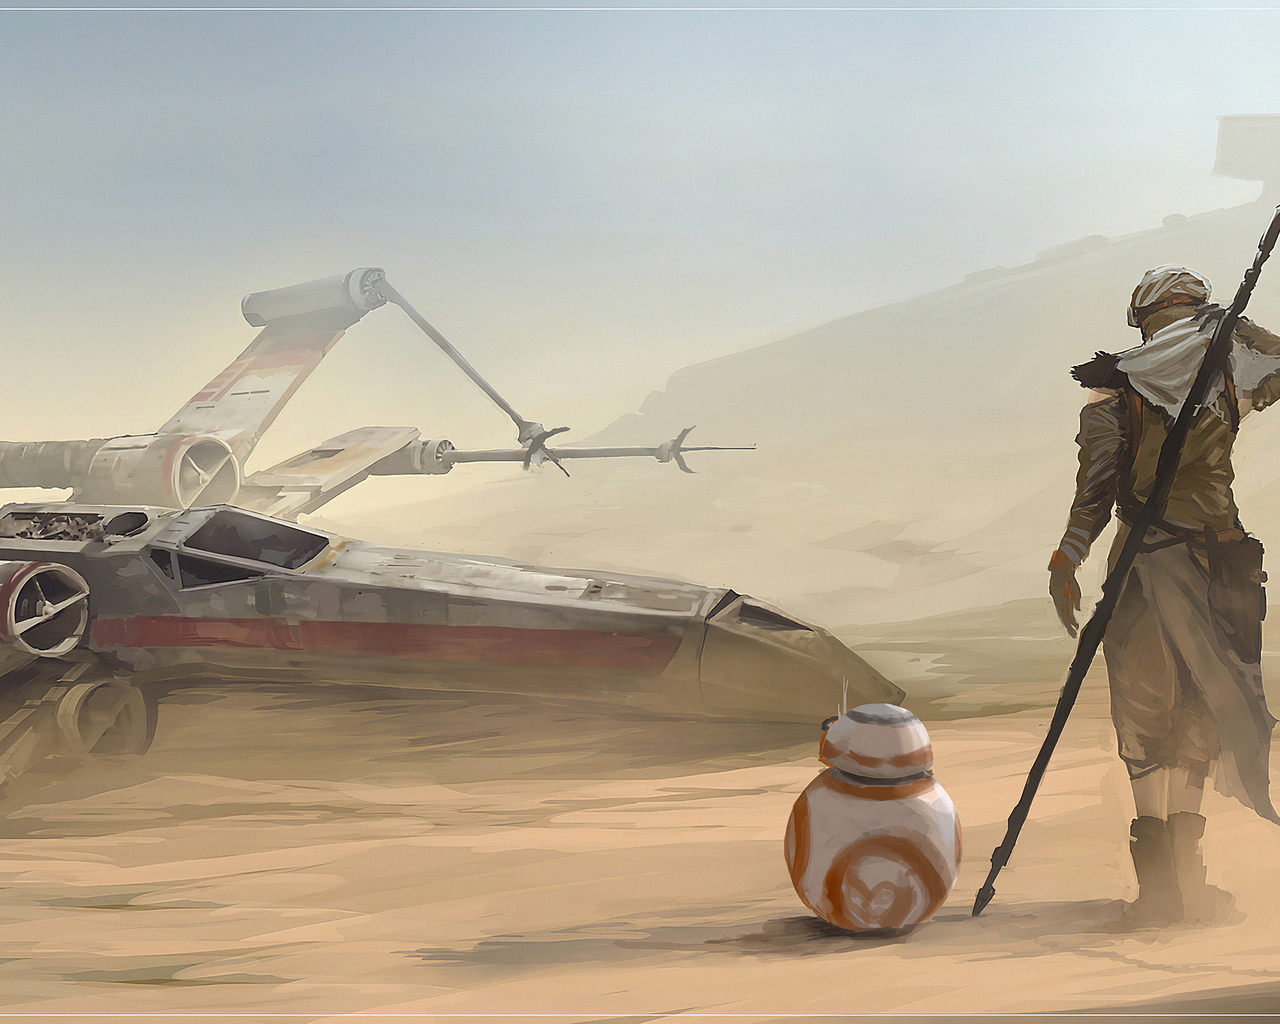 rey-and-bb8-fn.jpg